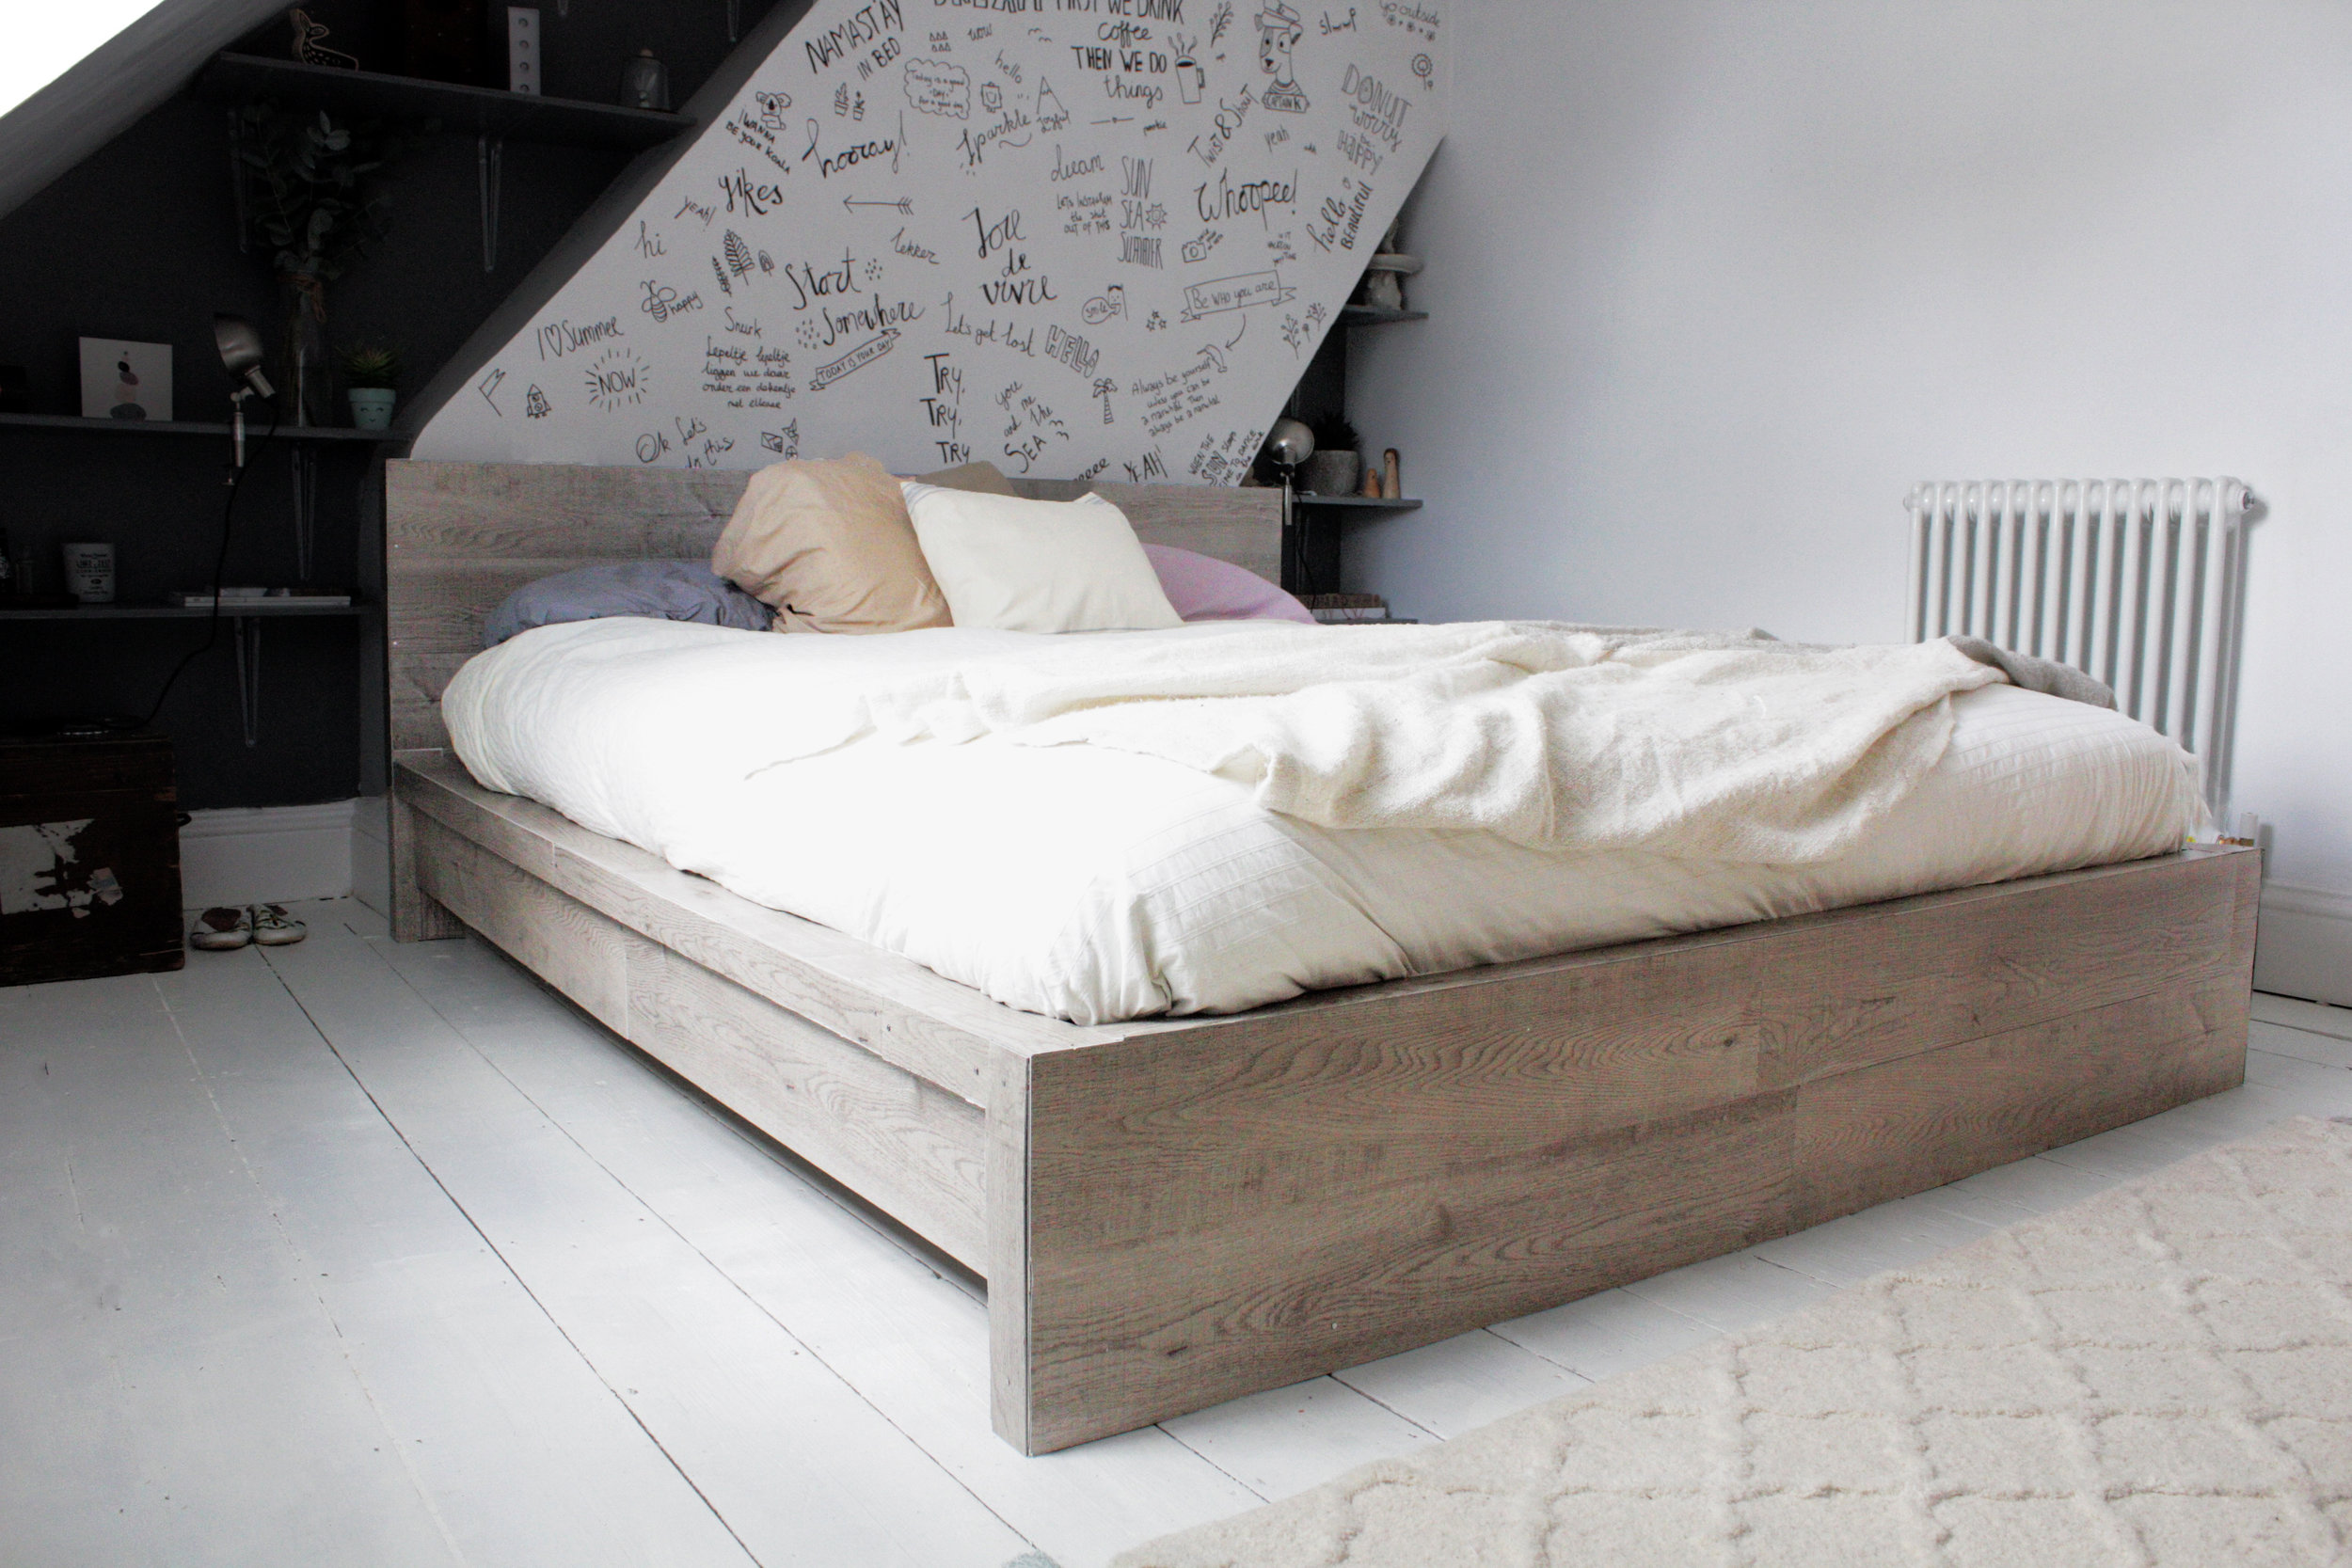 Ikea Malm Bed Ikea Hack Rustic Look For A Malm Bedframe Hester S Handmade Home